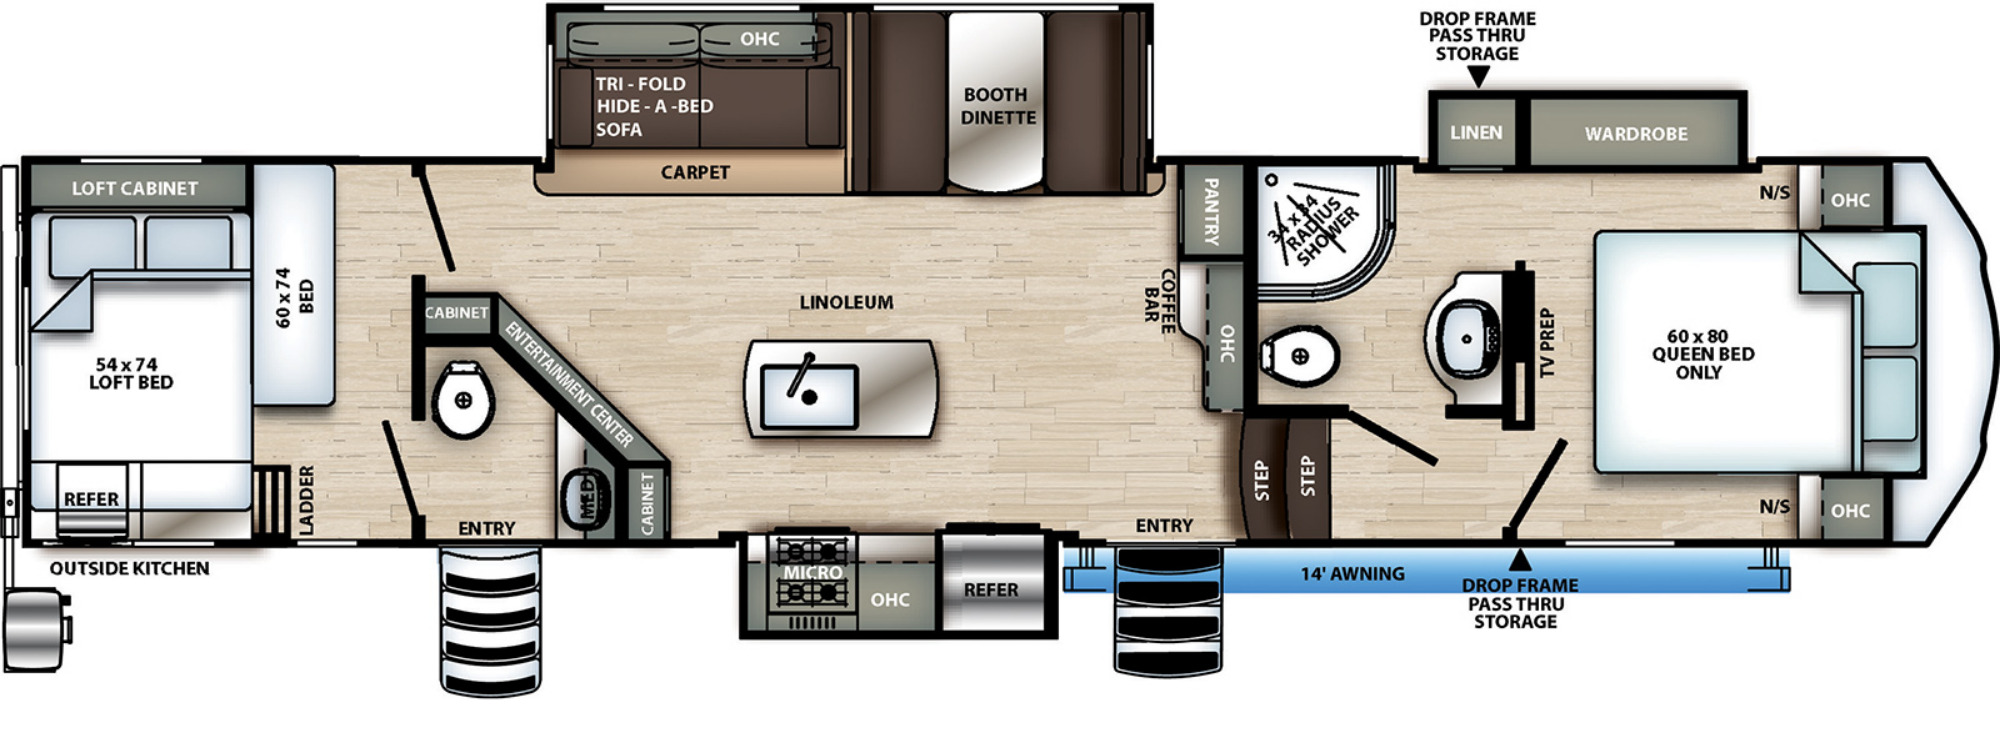 View Floor Plan for 2021 FOREST RIVER SANDPIPER C-CLASS 3440BH